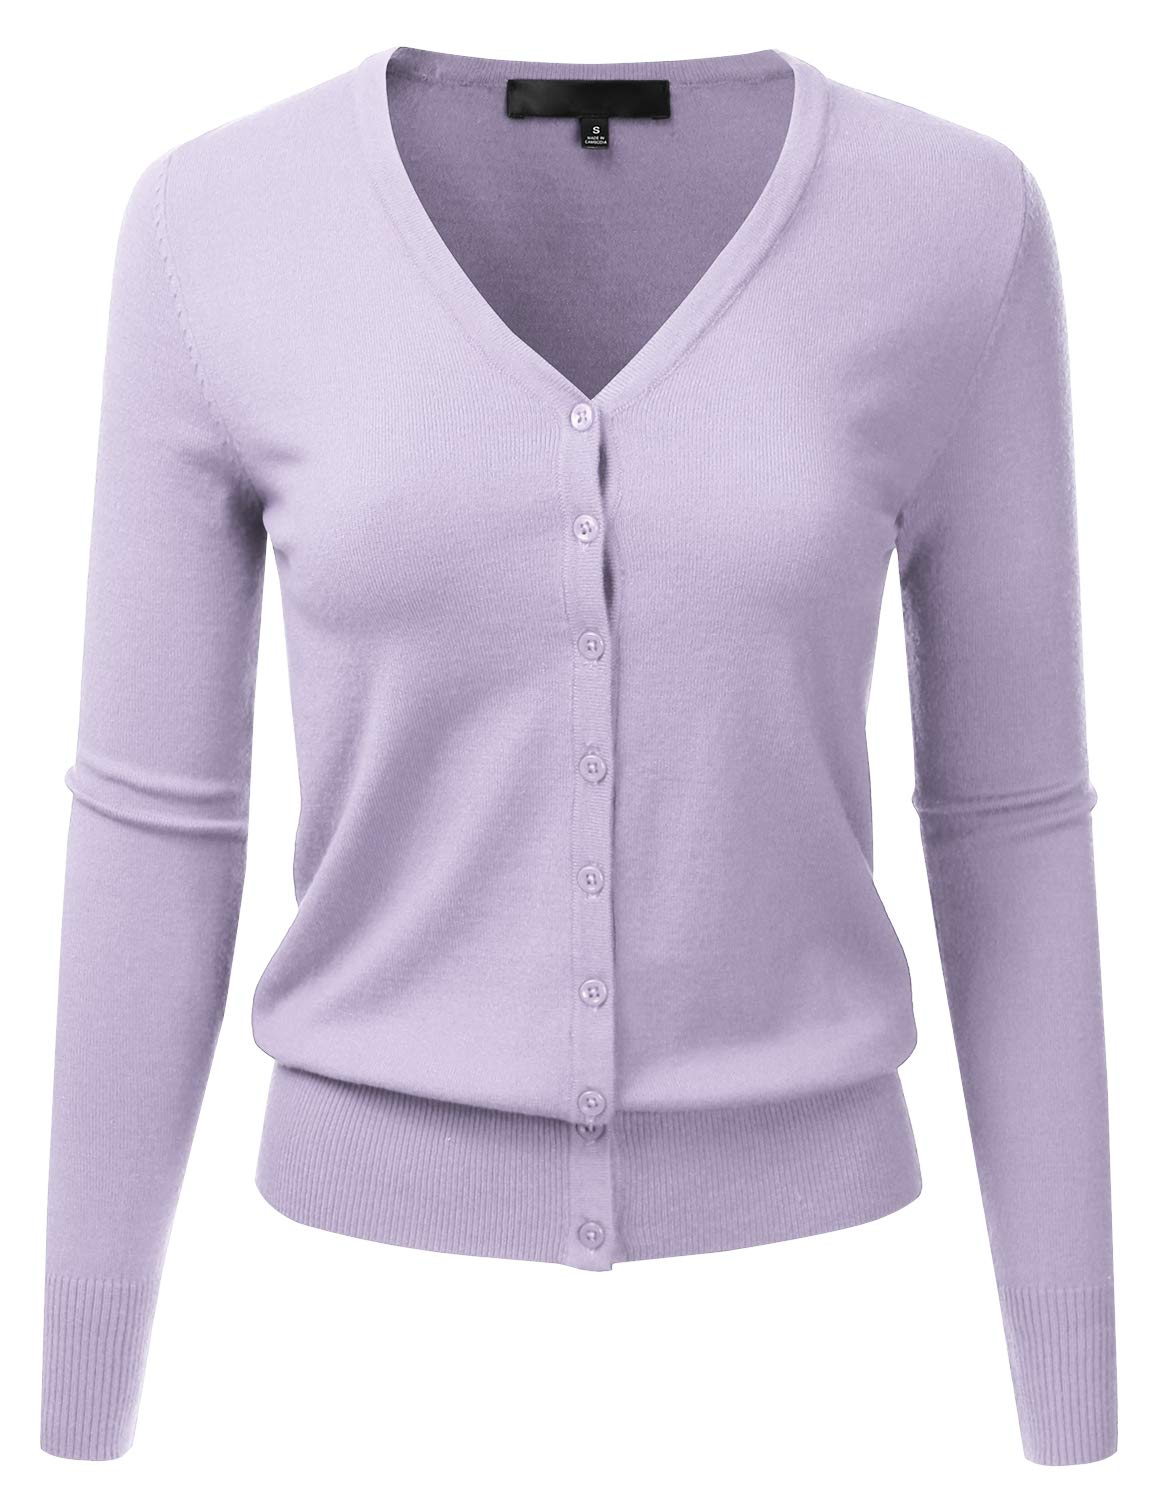 EIMIN Women's Button Down V-Neck Long Sleeve Soft Knit Cardigan Sweater (S-XL)